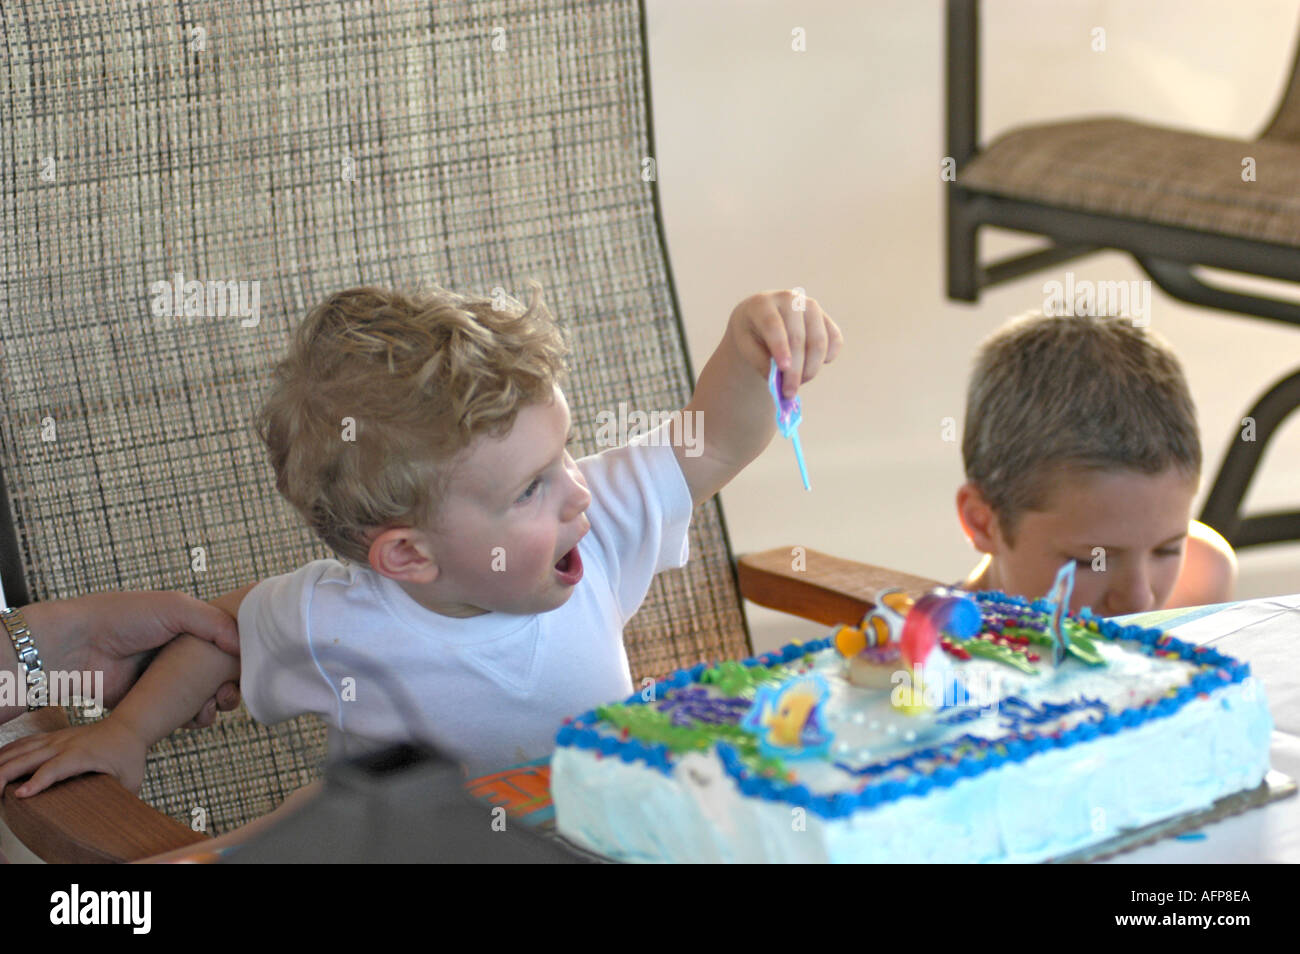 Child Having His 2nd Birthday Party A Boy Stock Photo Alamy